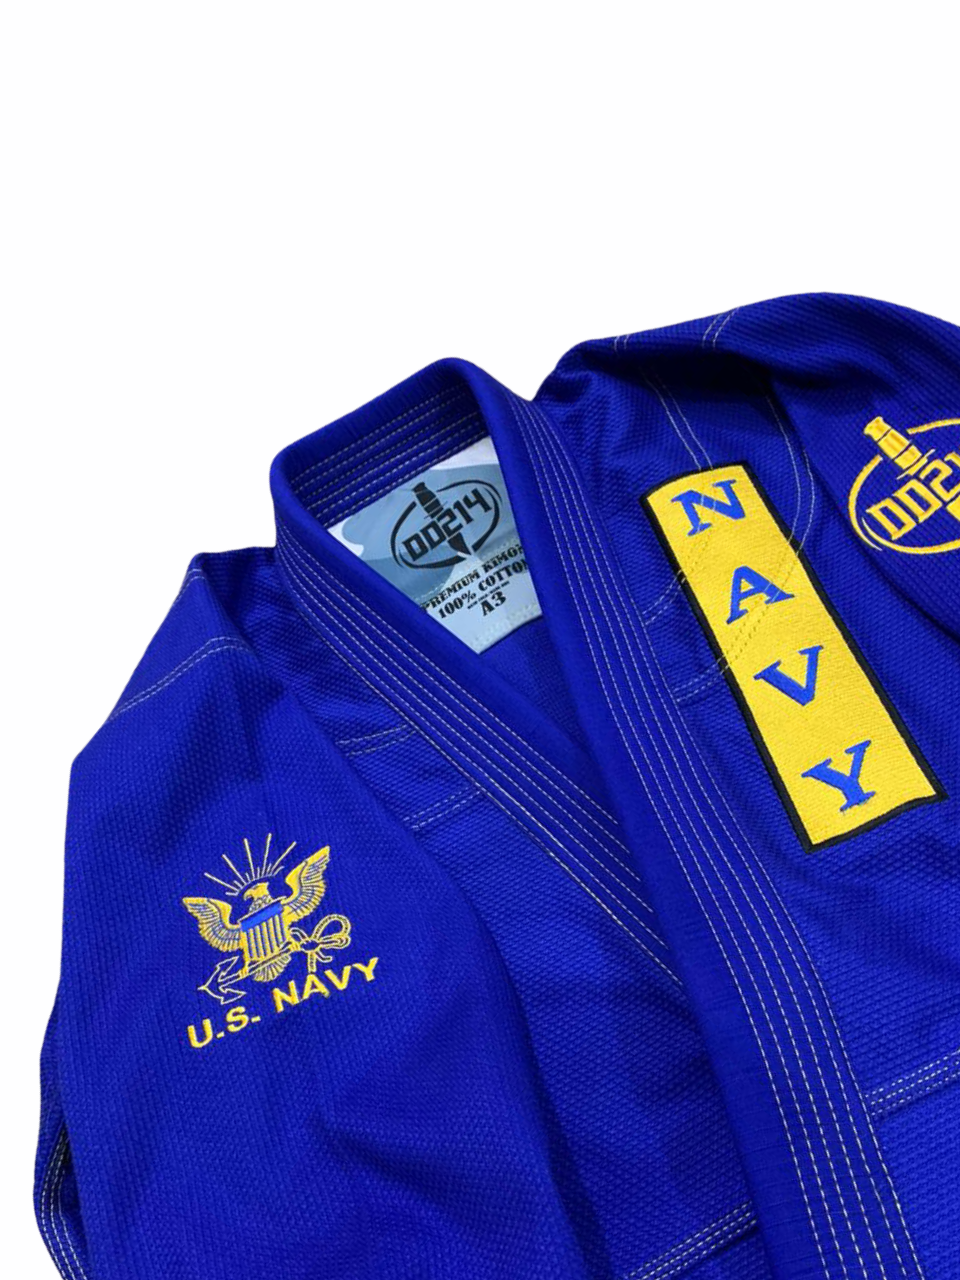 Full Speed Ahead Jiu Jitsu Gi